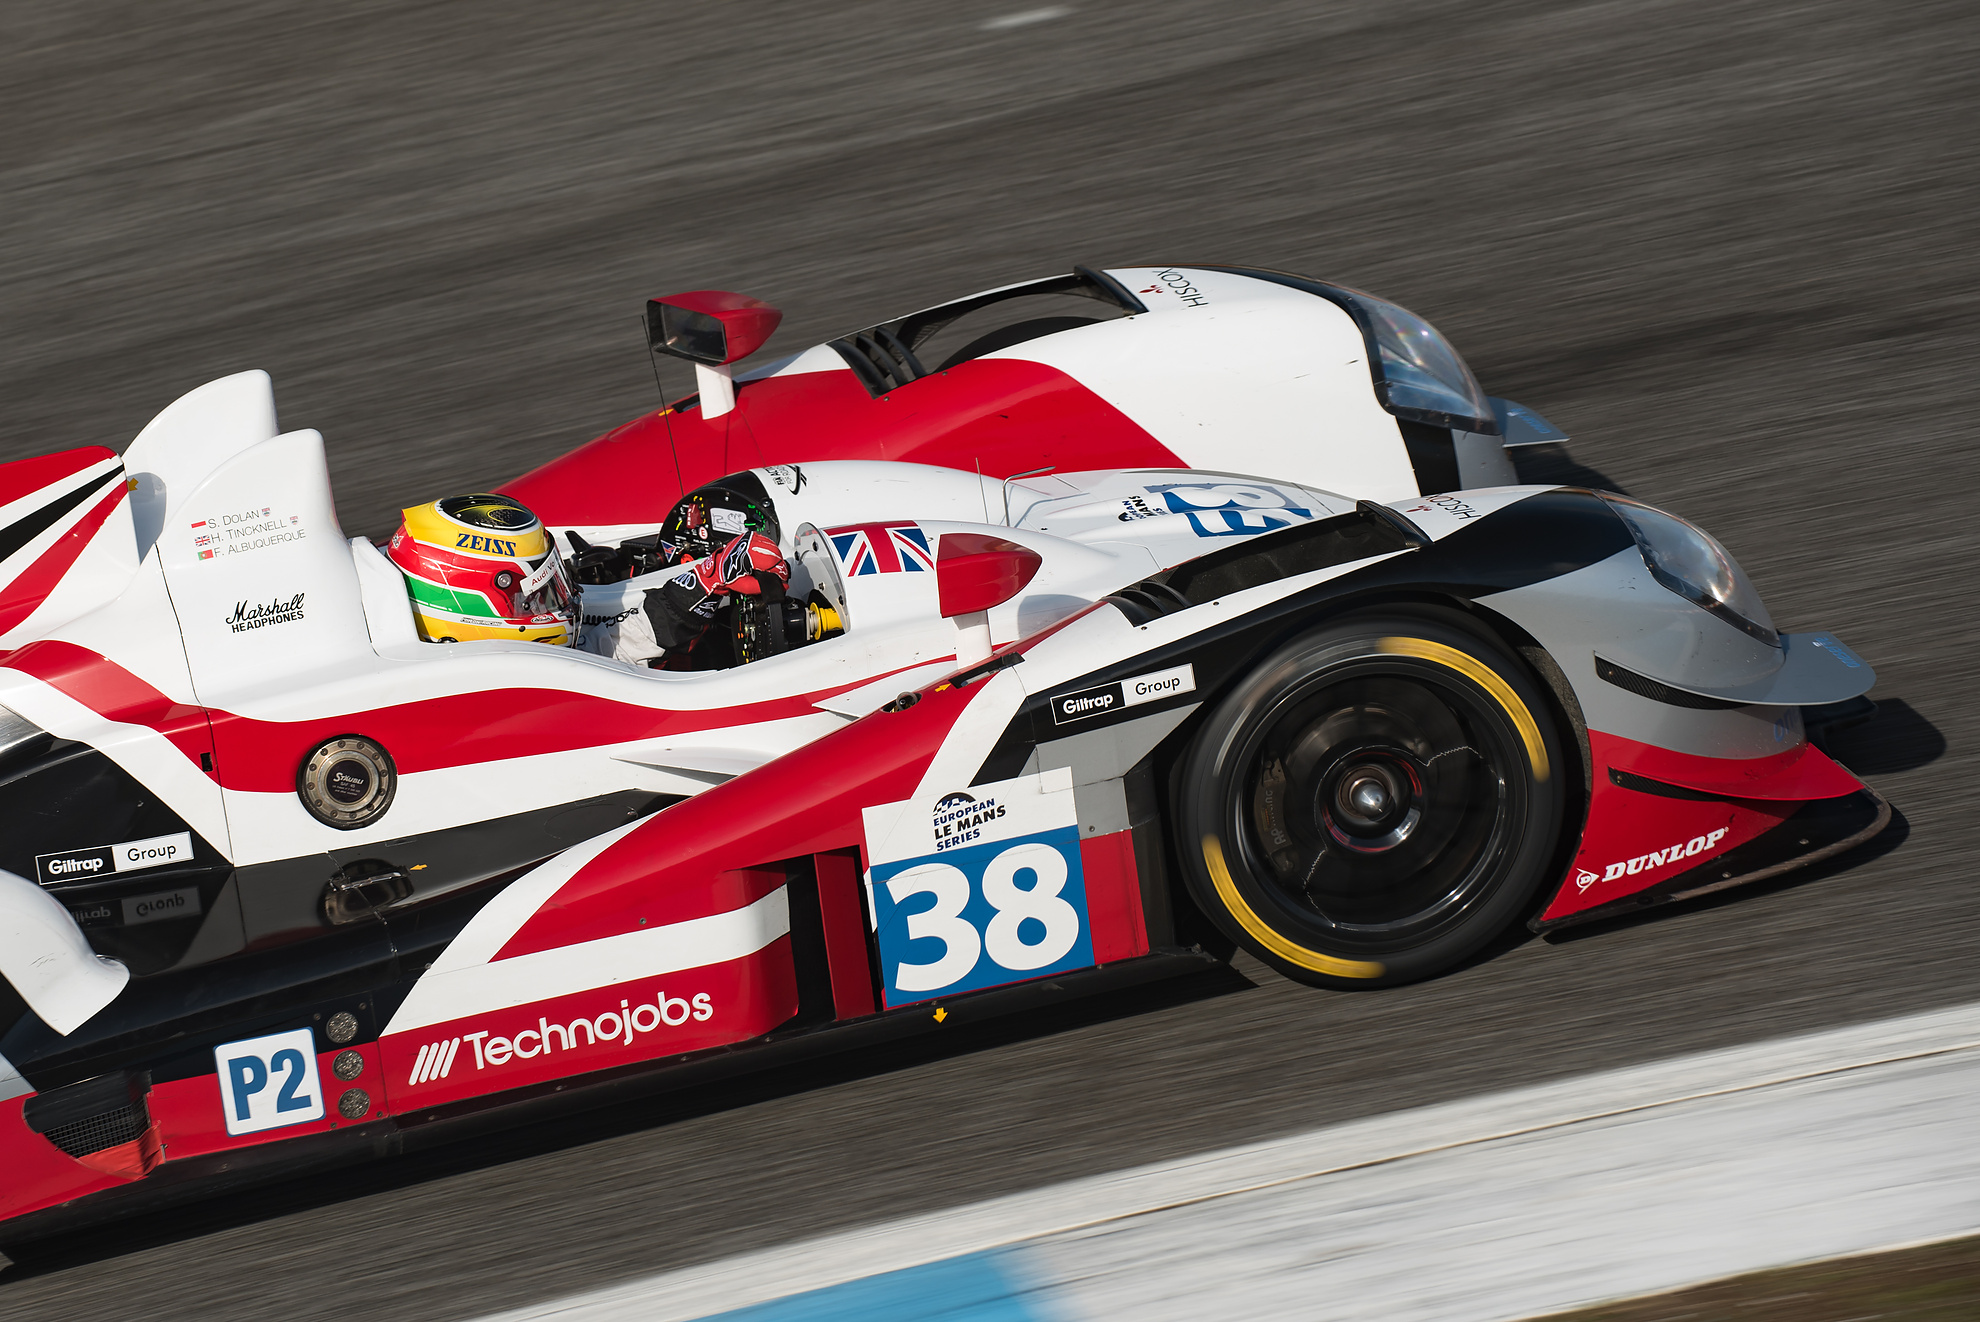 The Gibson 0155 - NISSAN with Filipe Albuquerque   driving for the pole during the 4 Hours of Estoril 2015, last round of the European Le Mans Series.